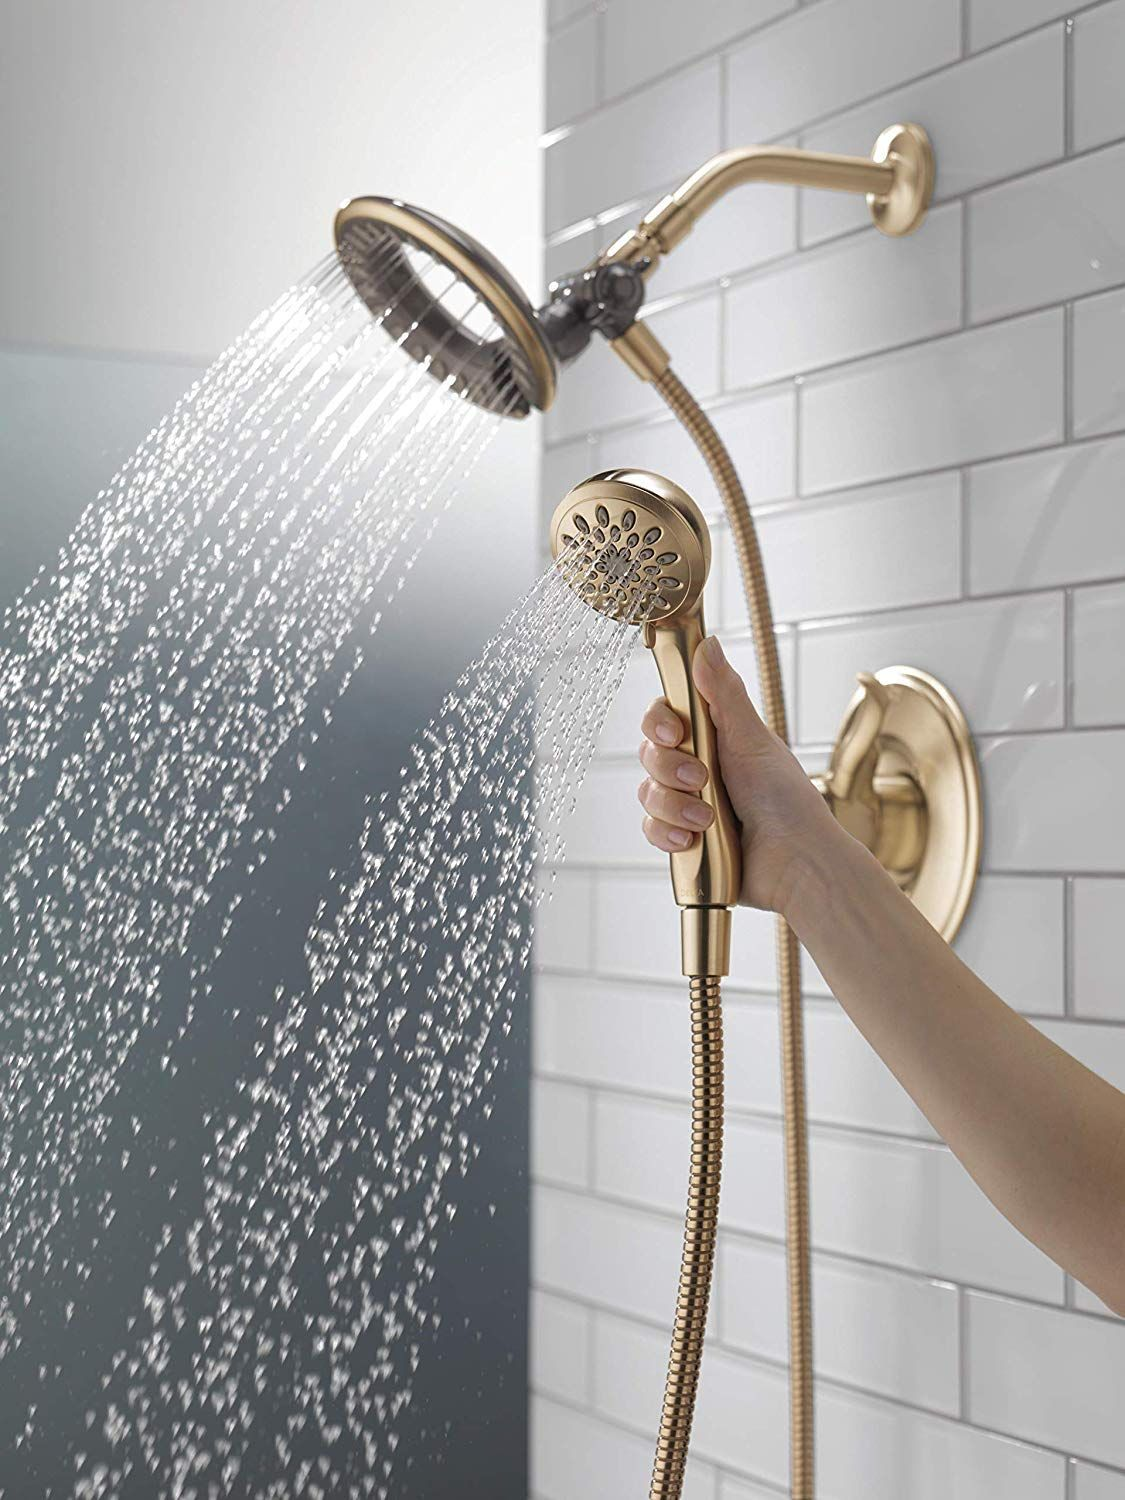 Best Shower Faucet Reviews In 2020 With Images Shower Heads